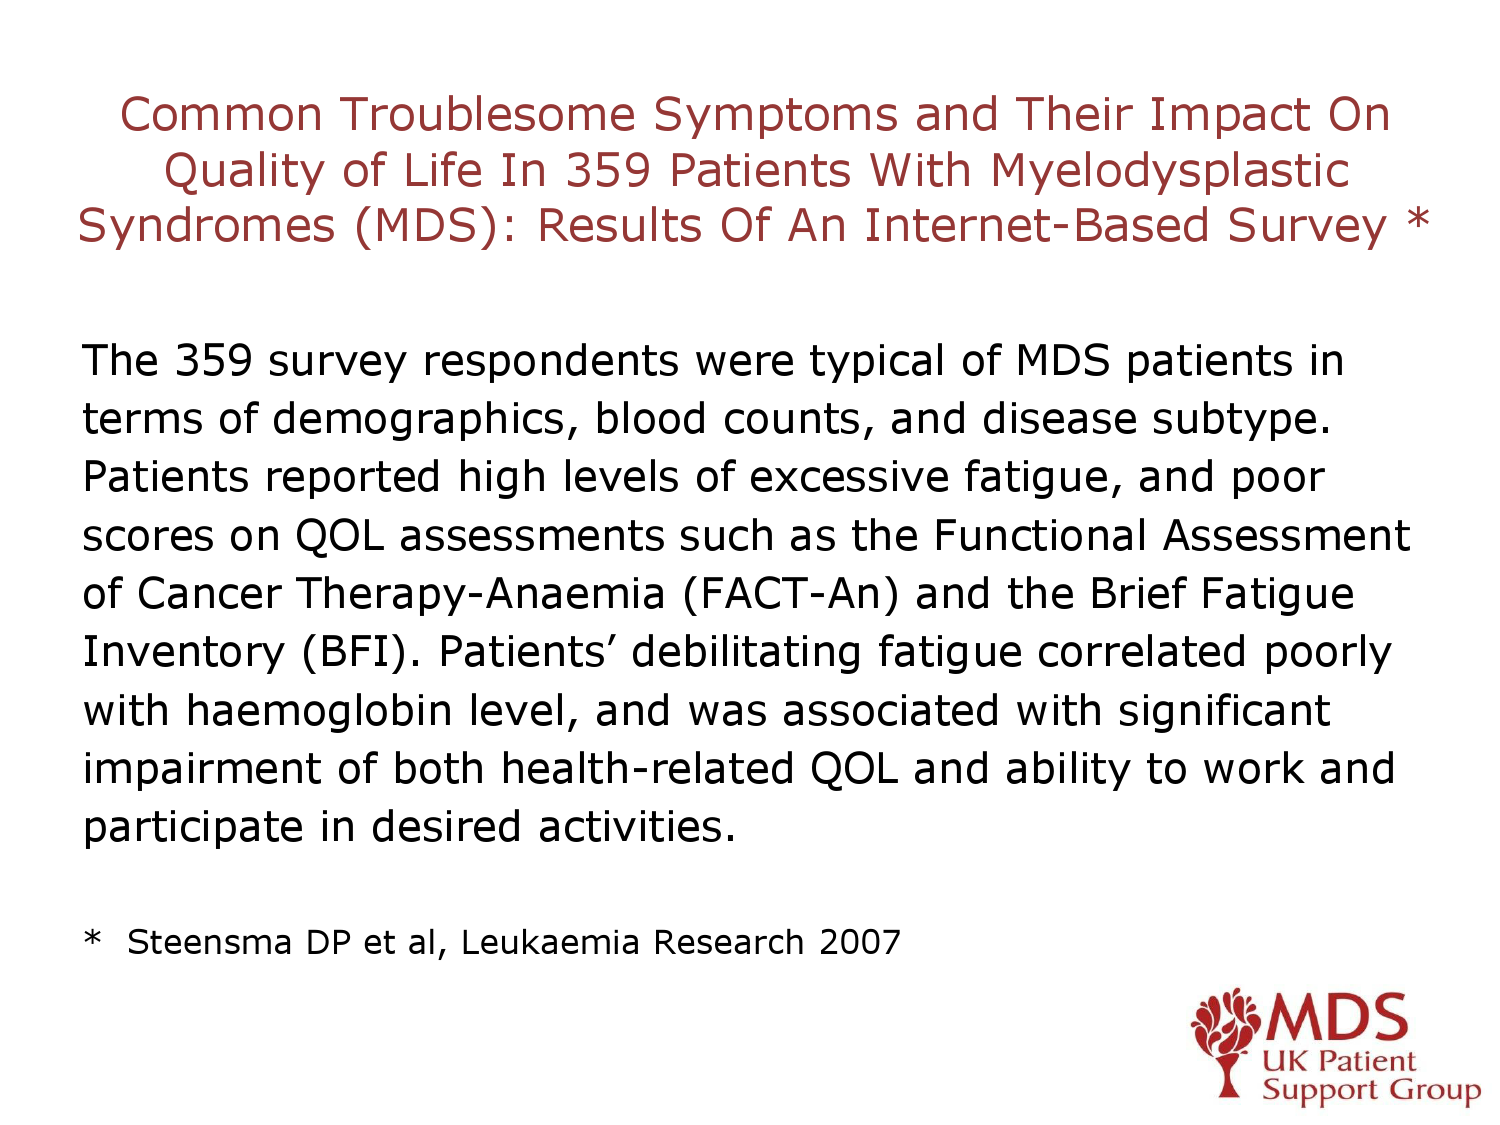 uk-mds-forum-slides-2014-slide-21.png